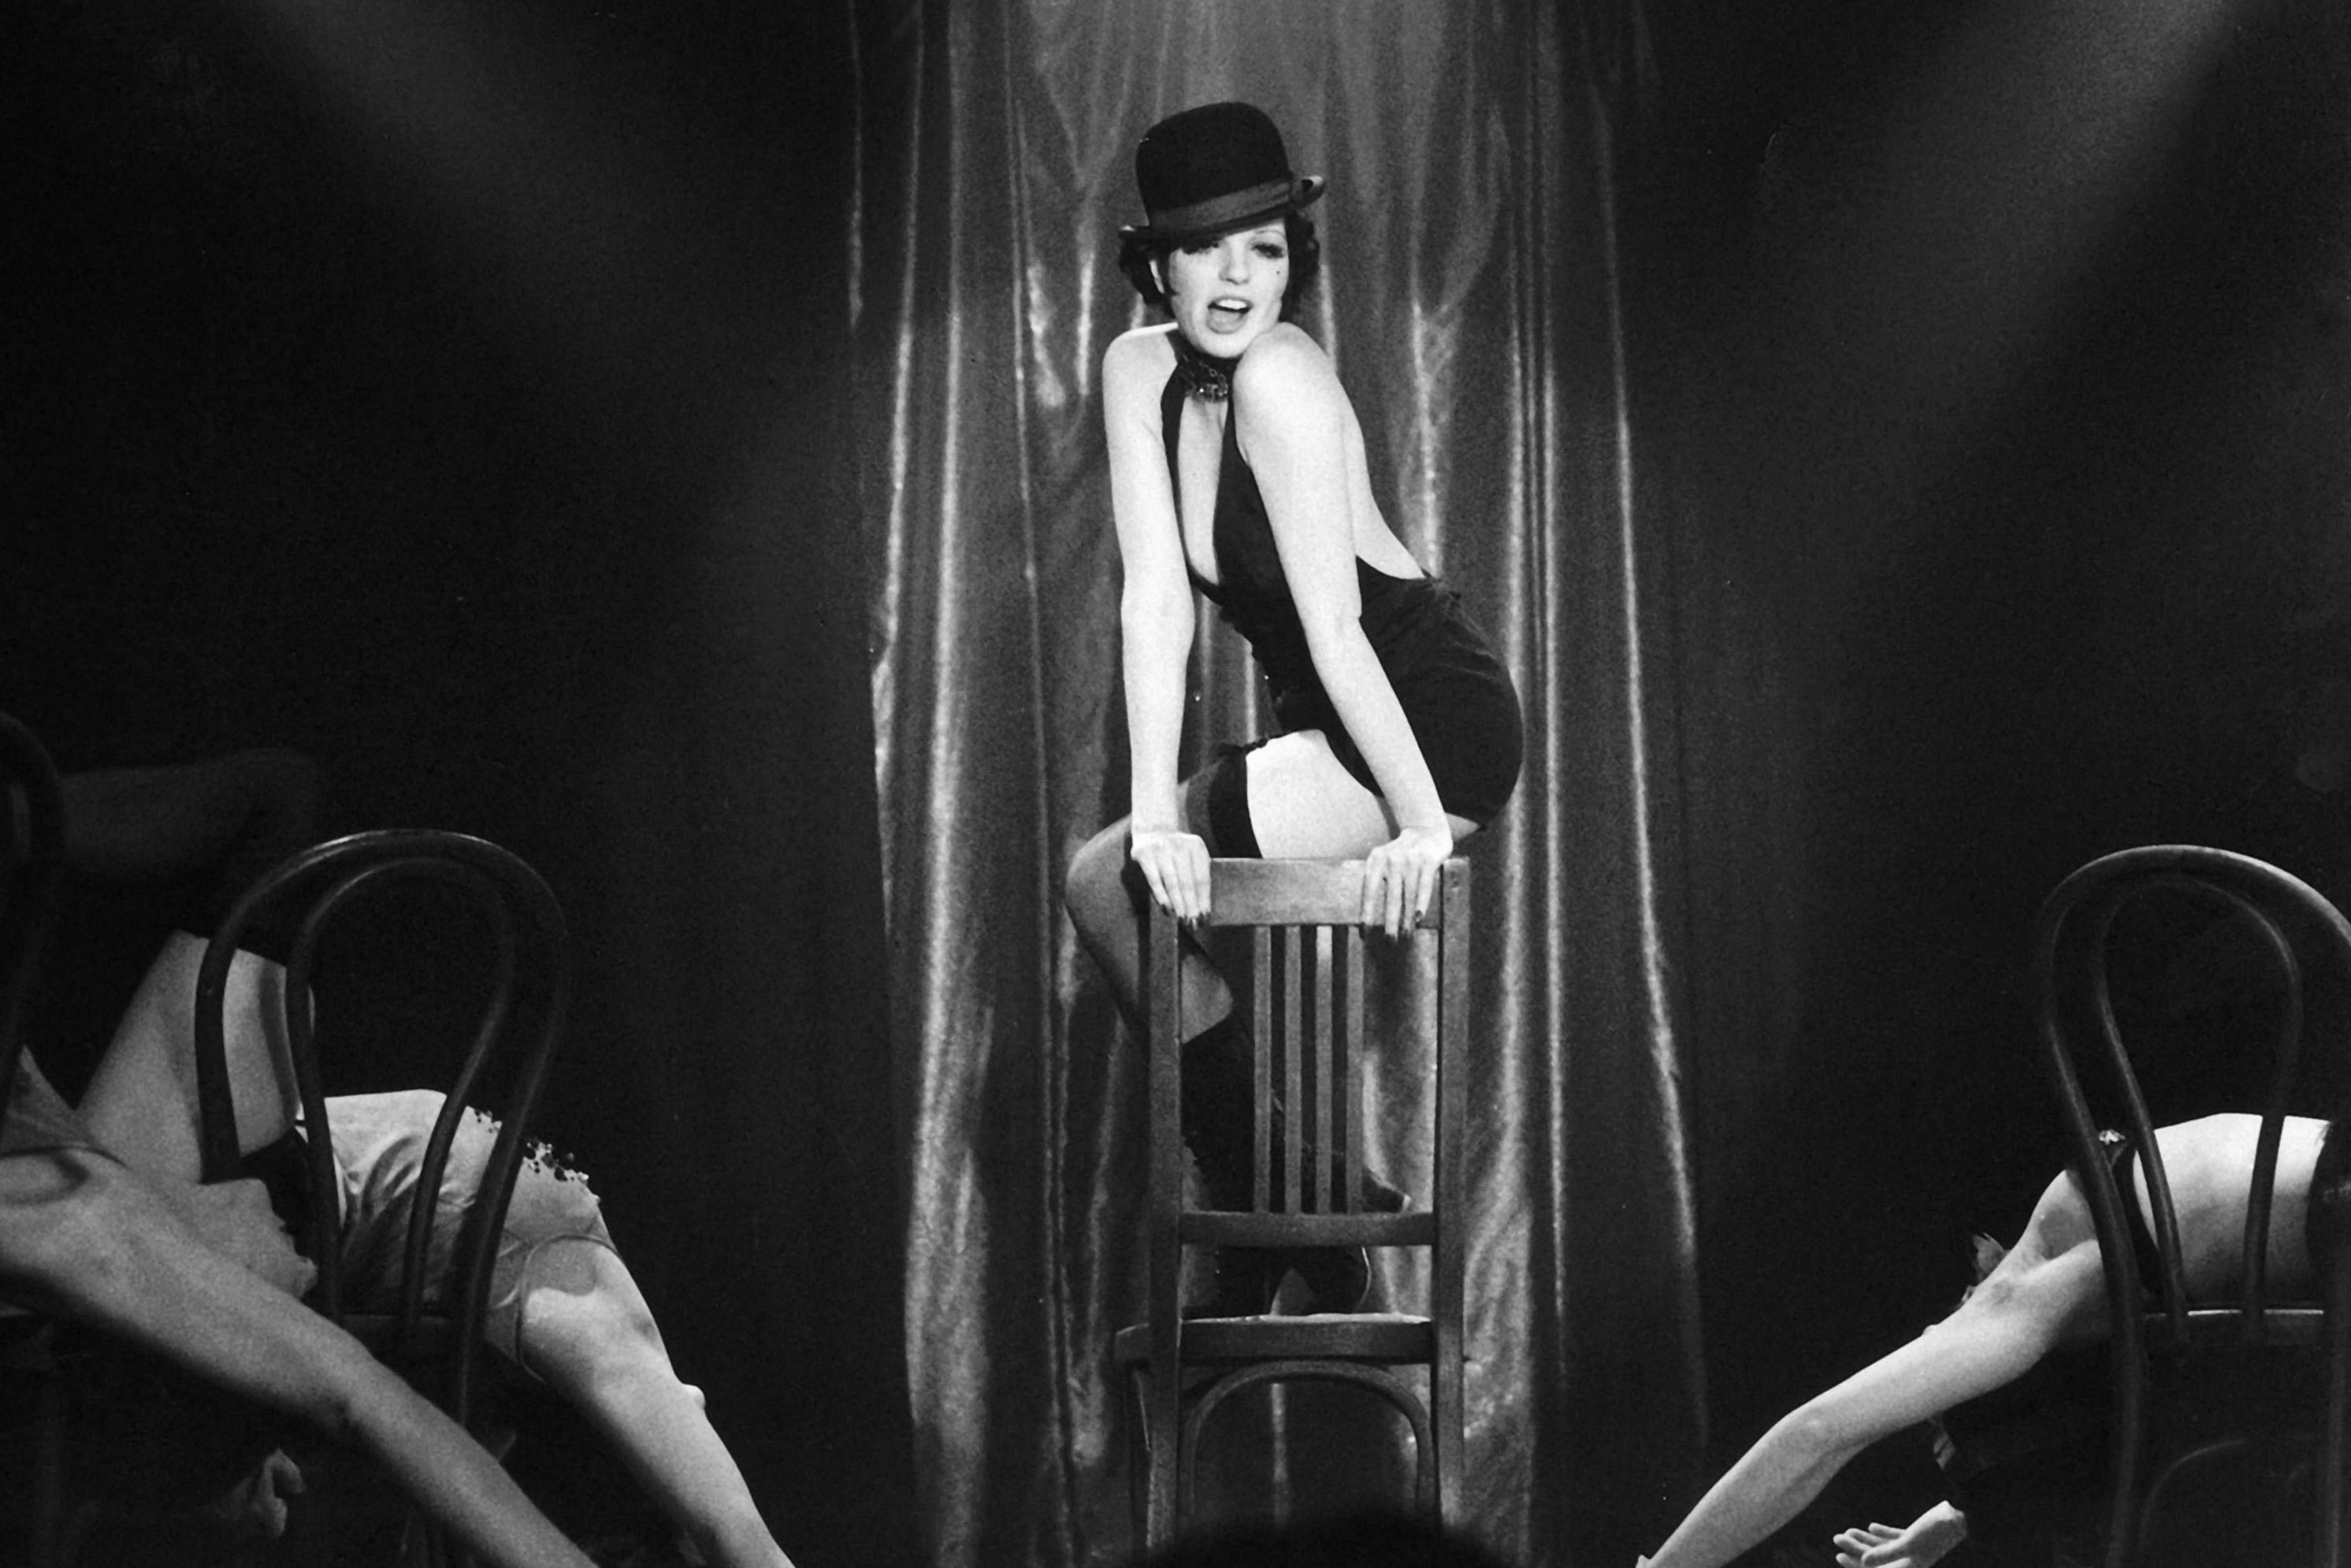 'Cabaret' (1972) is a musical loosely adapted from Christopher Isherwood's 1939 novel 'Goodbye to Berlin'